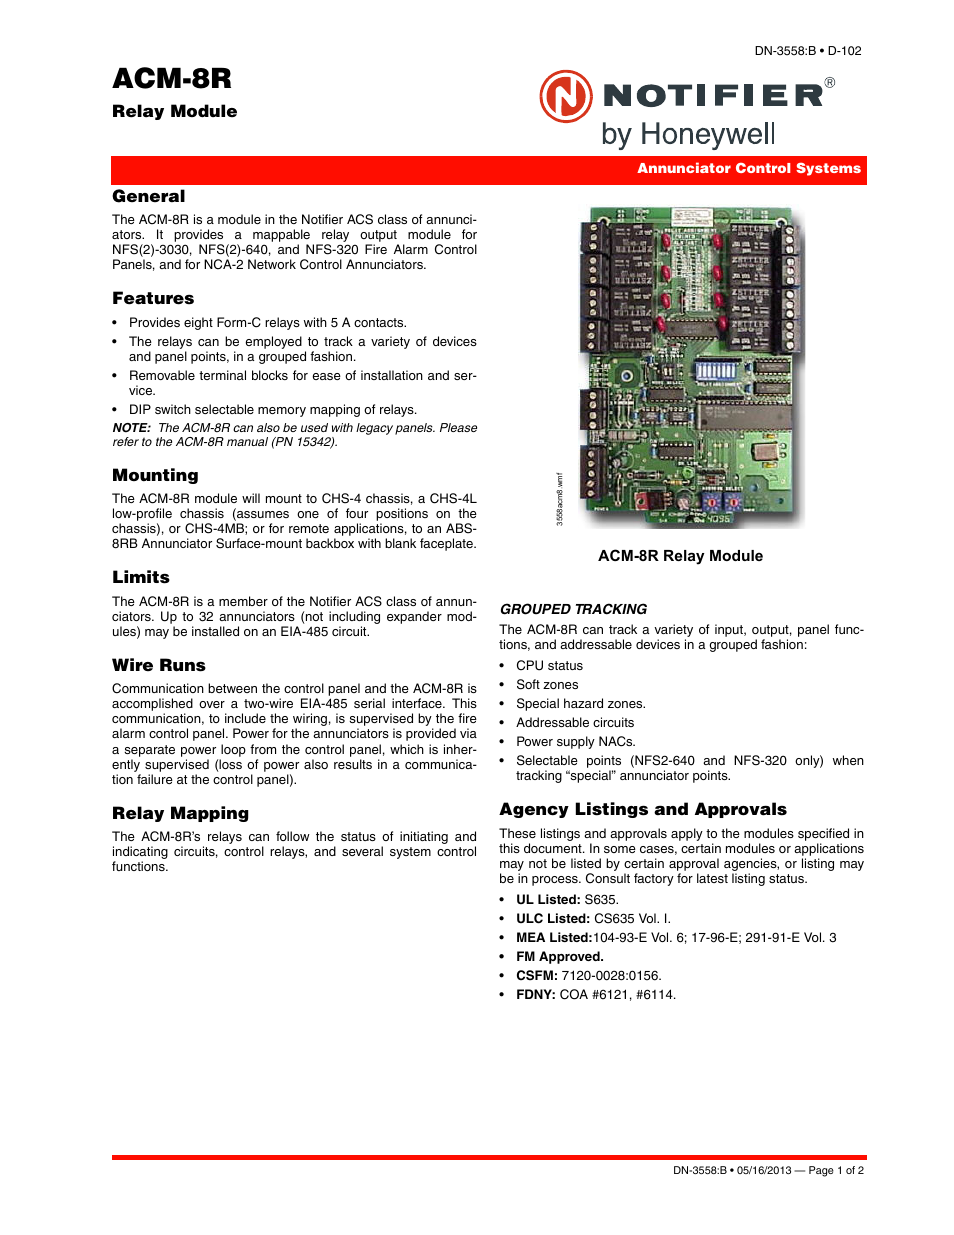 Notifier ACM-8R User Manual | 2 pages